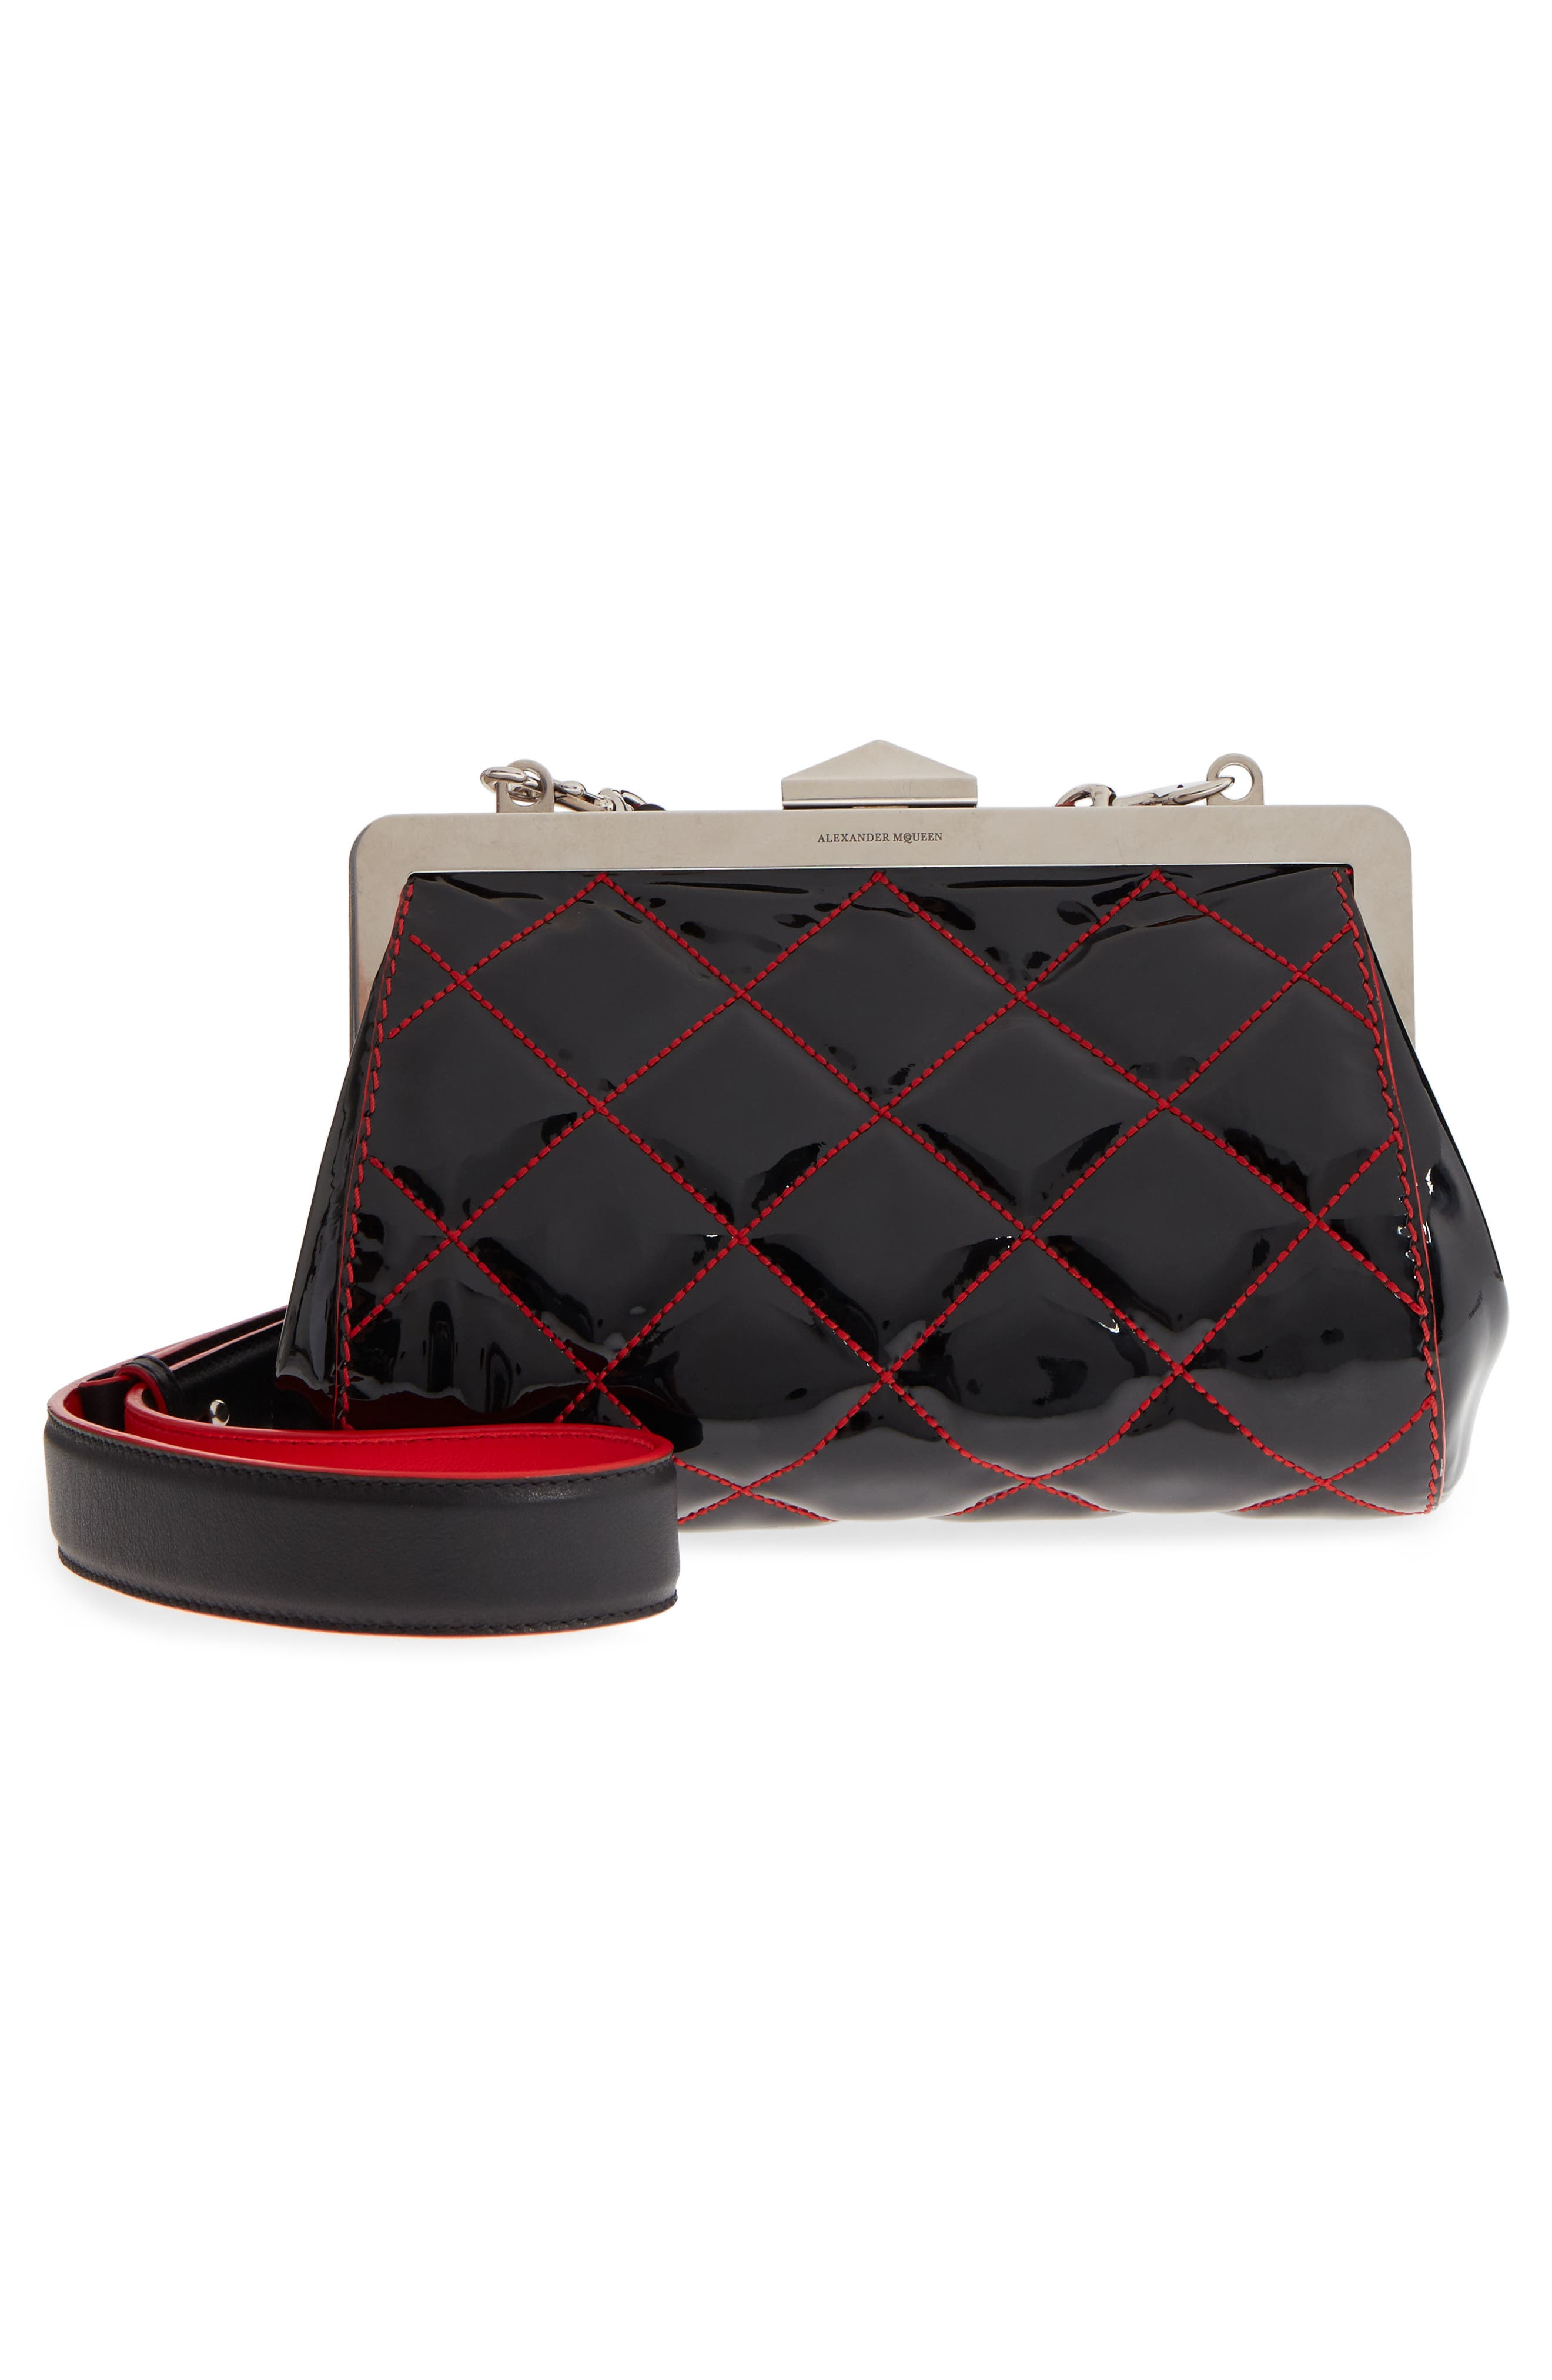 Quilted Patent Leather Frame Clutch,                             Alternate thumbnail 3, color,                             BLACK/ LUST RED